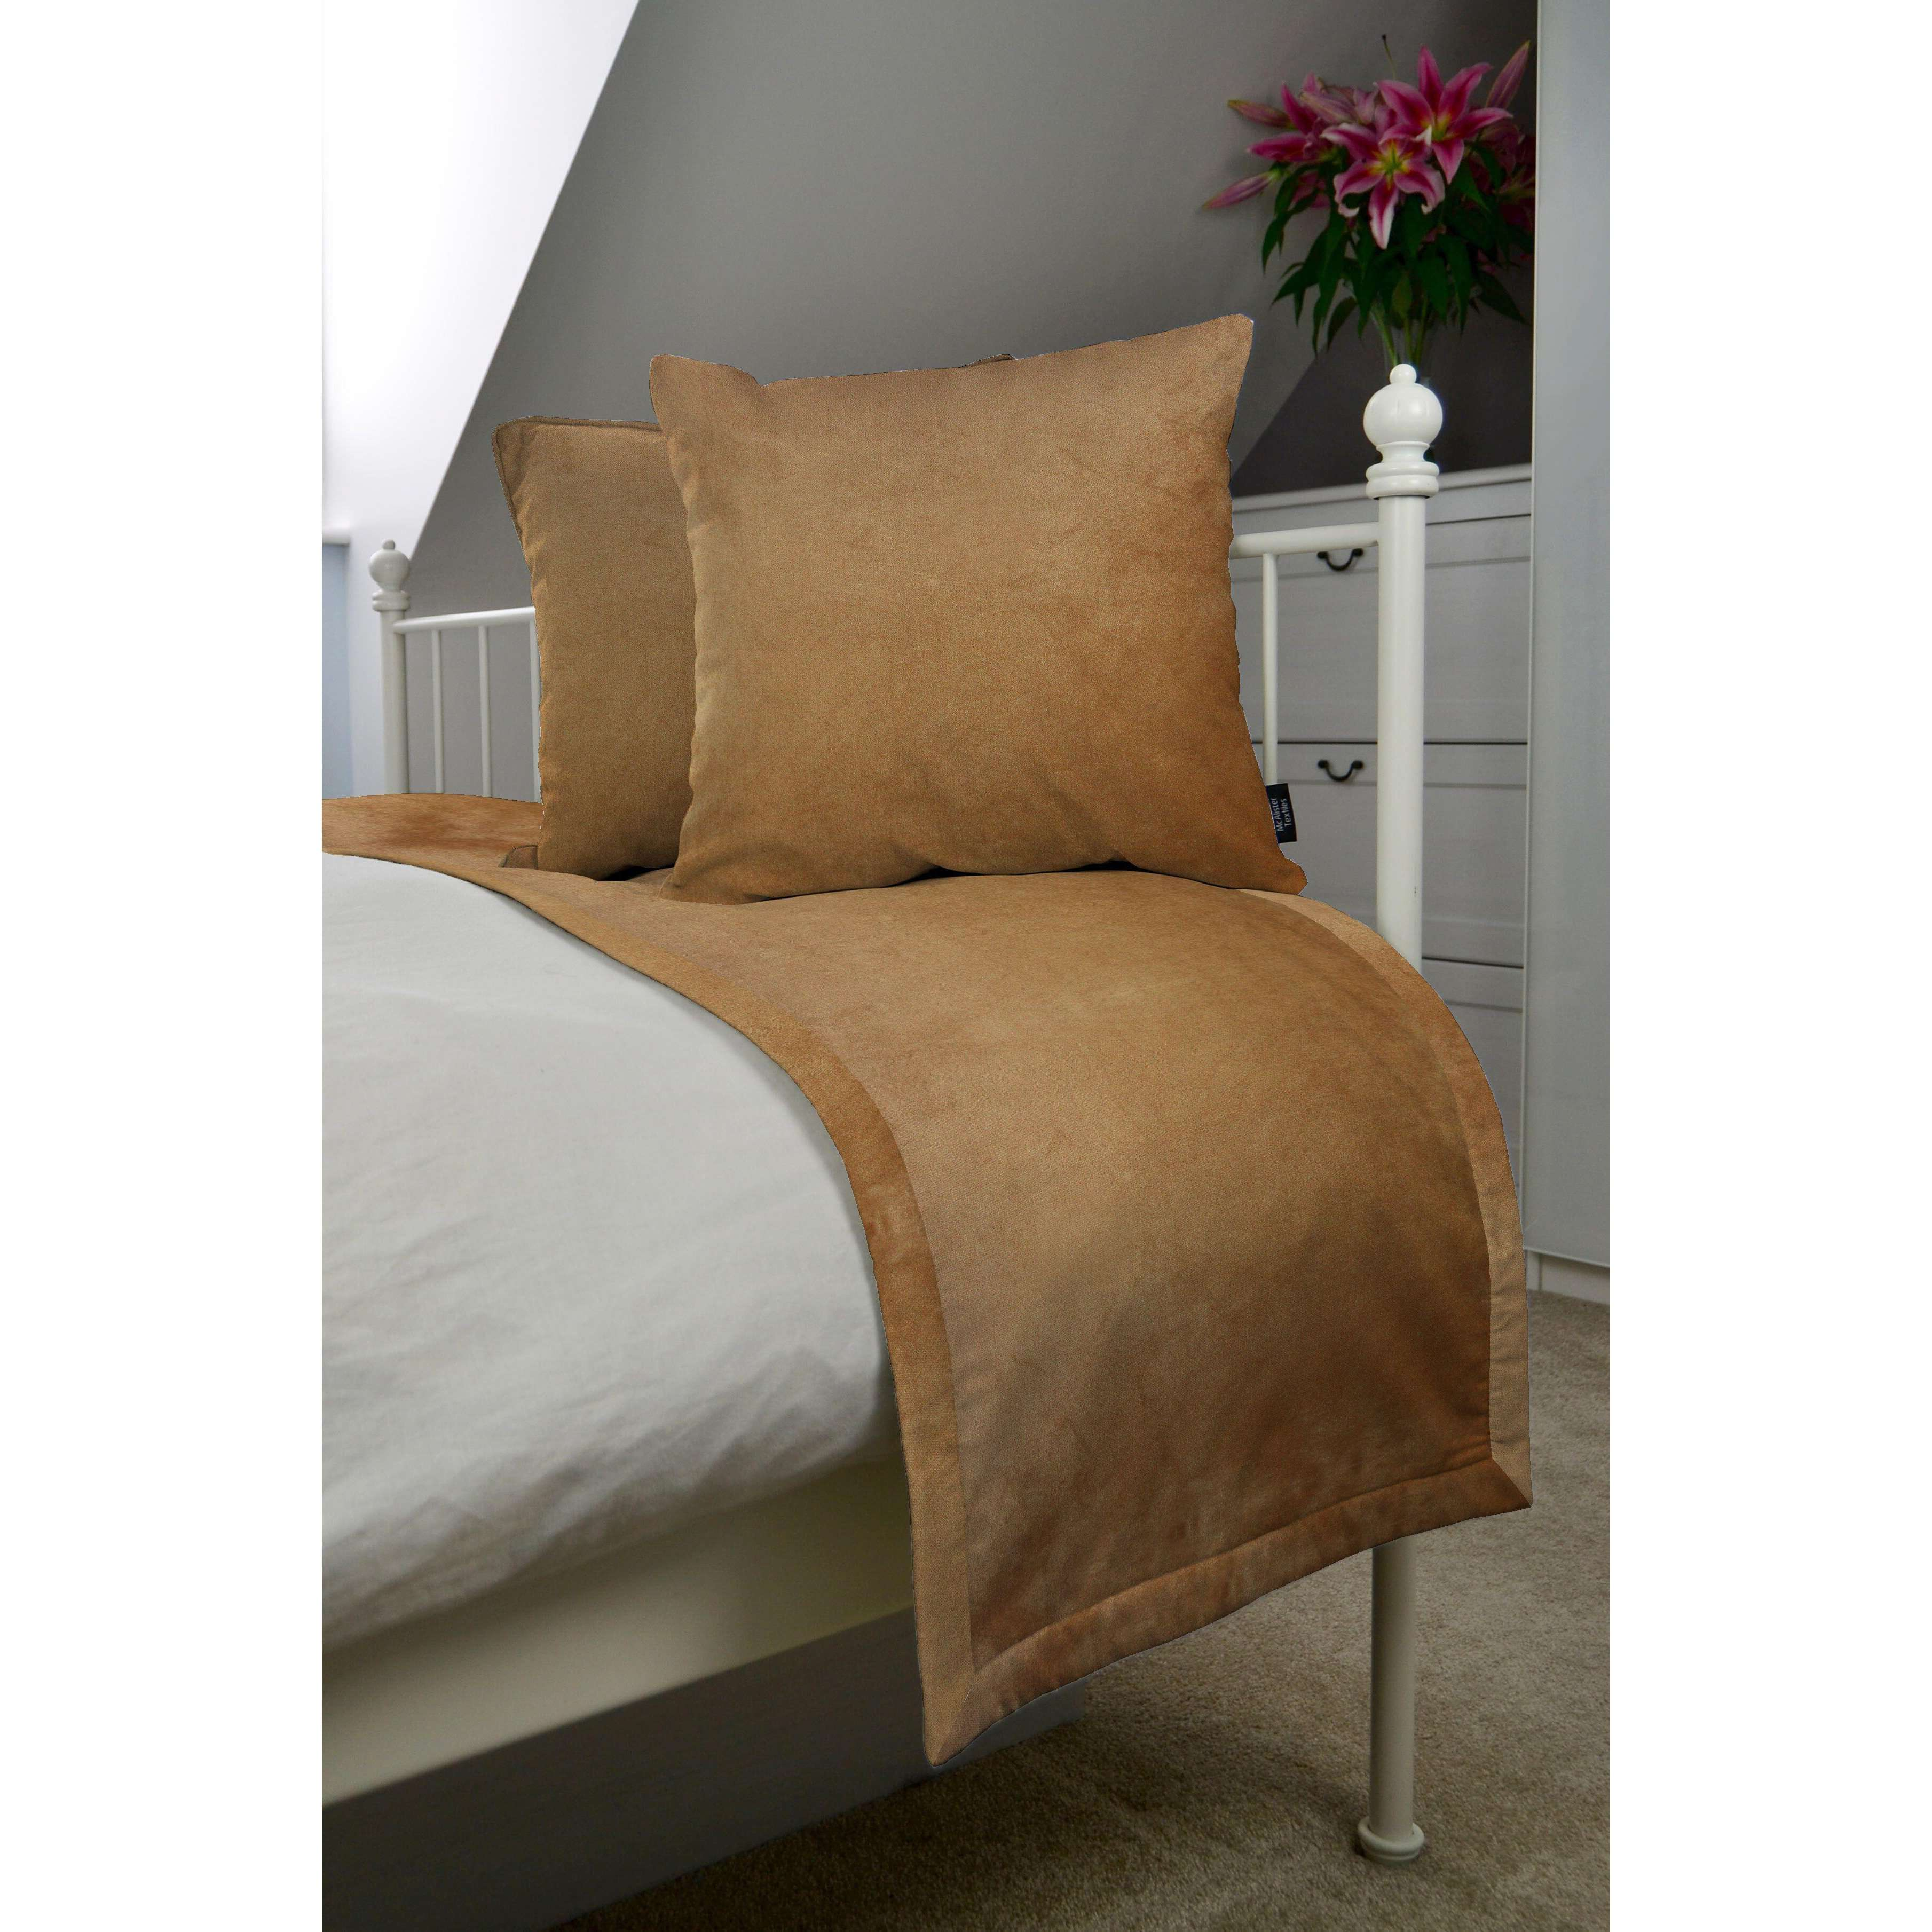 McAlister Textiles Matt Caramel Gold Velvet Bedding Set Bedding Set Runner (50x240cm) + 2x Cushion Covers